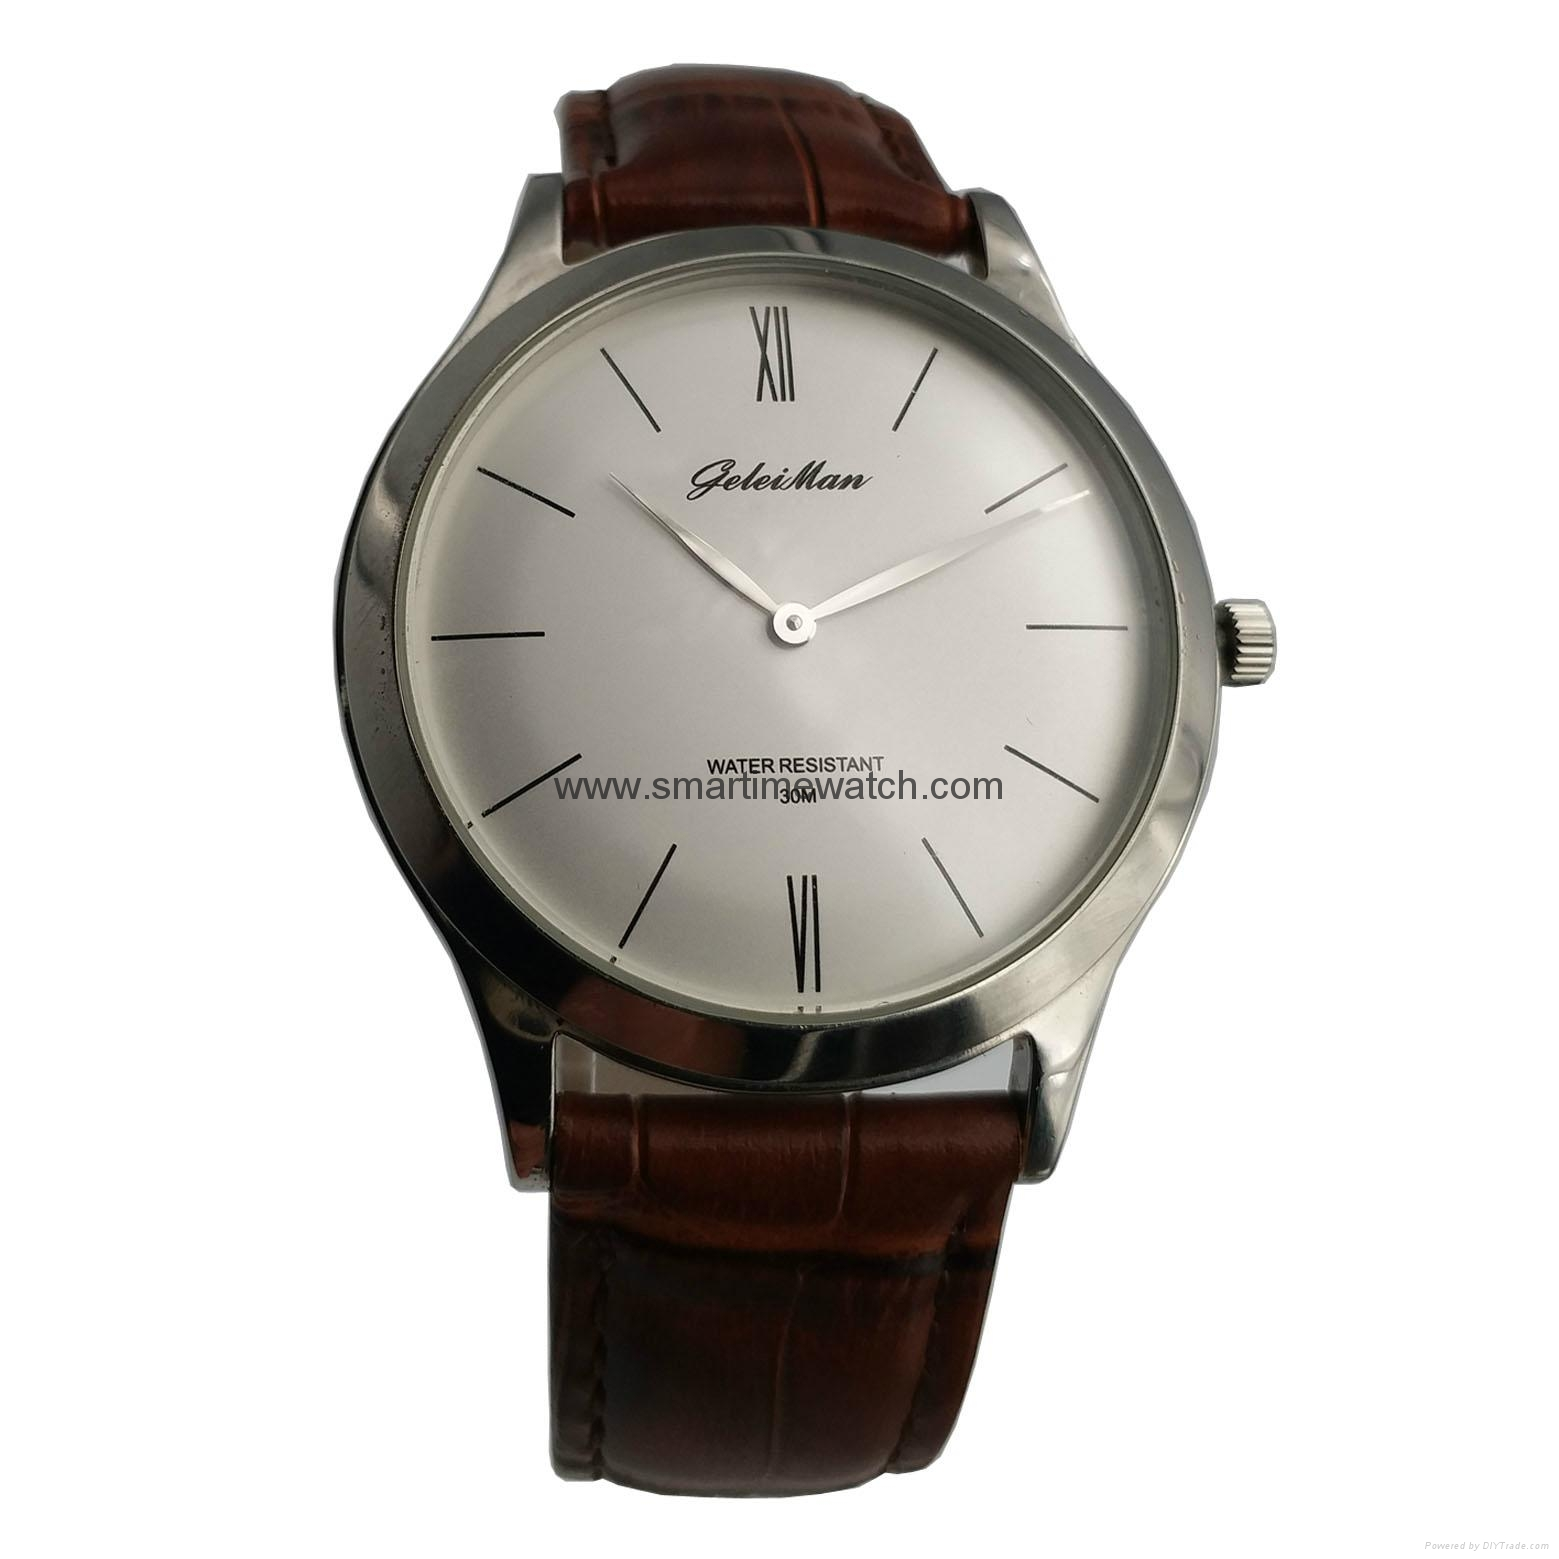 Men's Watch, Stainless Steel Case and Bracelet, SMT-1012 1